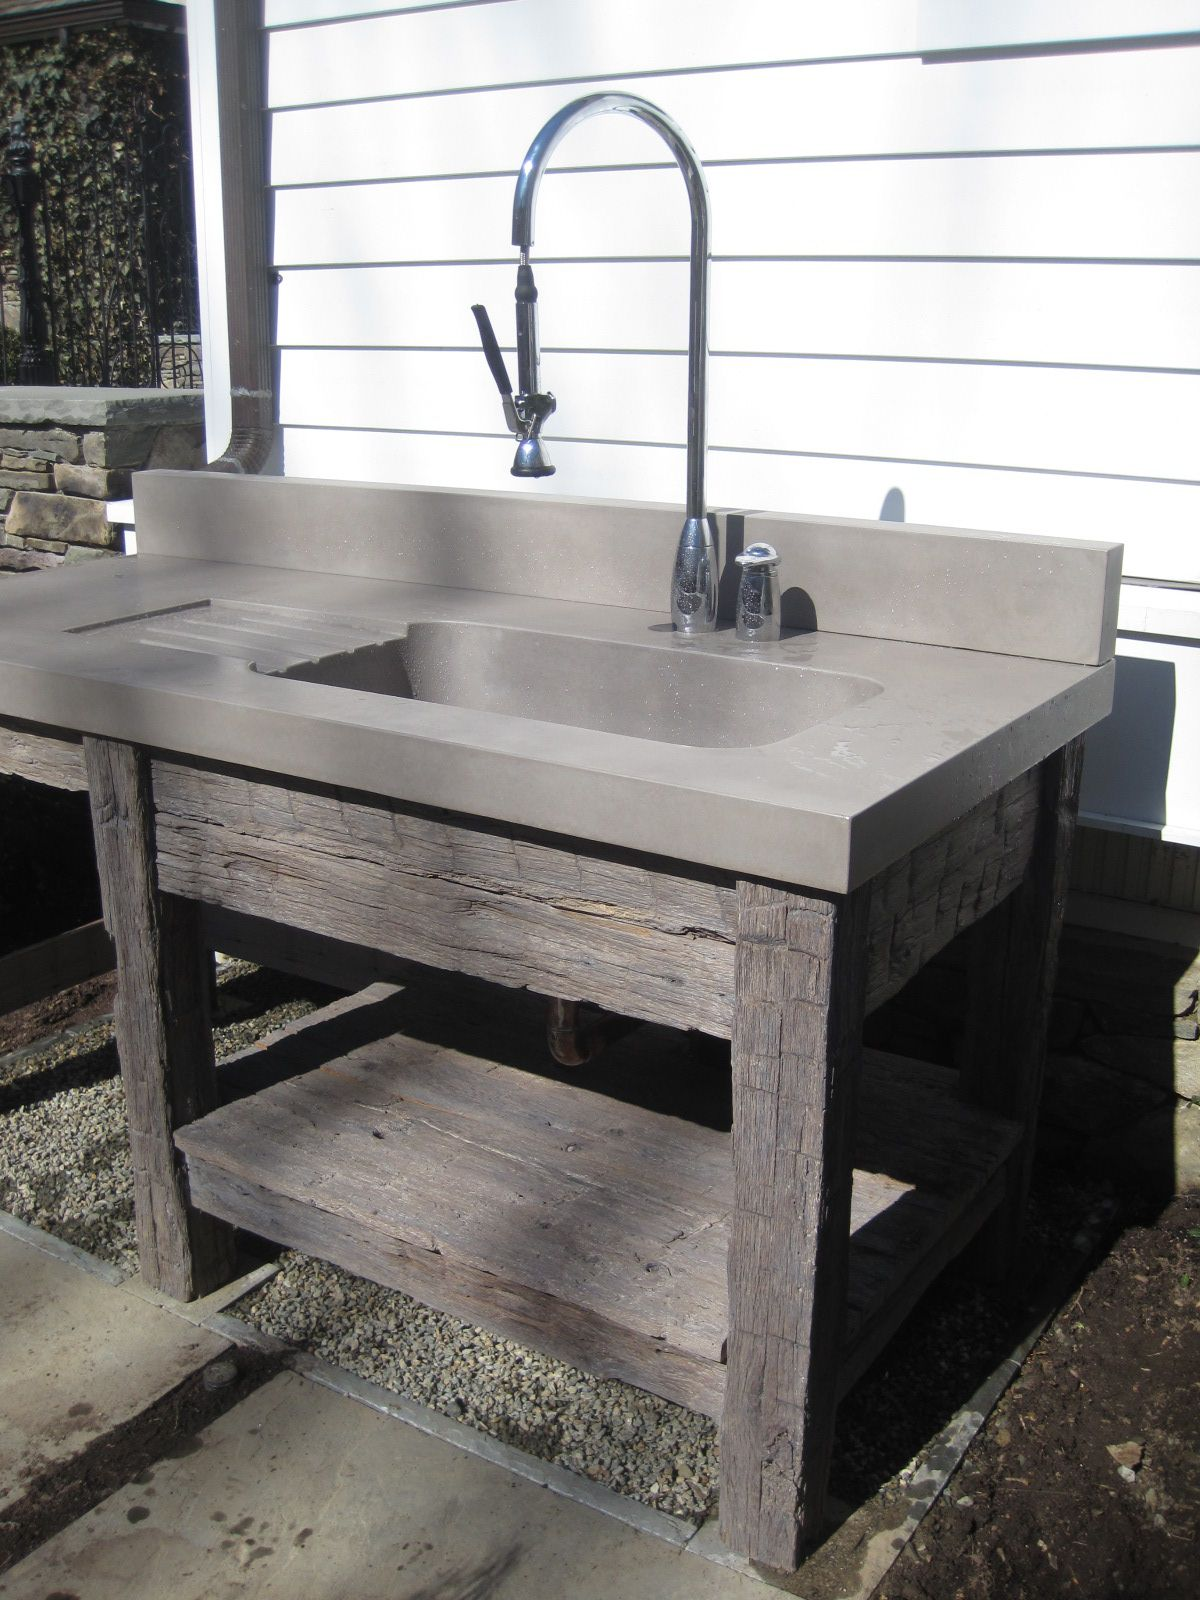 reclaimed wood vanity base and concrete bathroom sink by trueform concrete trueformconcrete. Black Bedroom Furniture Sets. Home Design Ideas